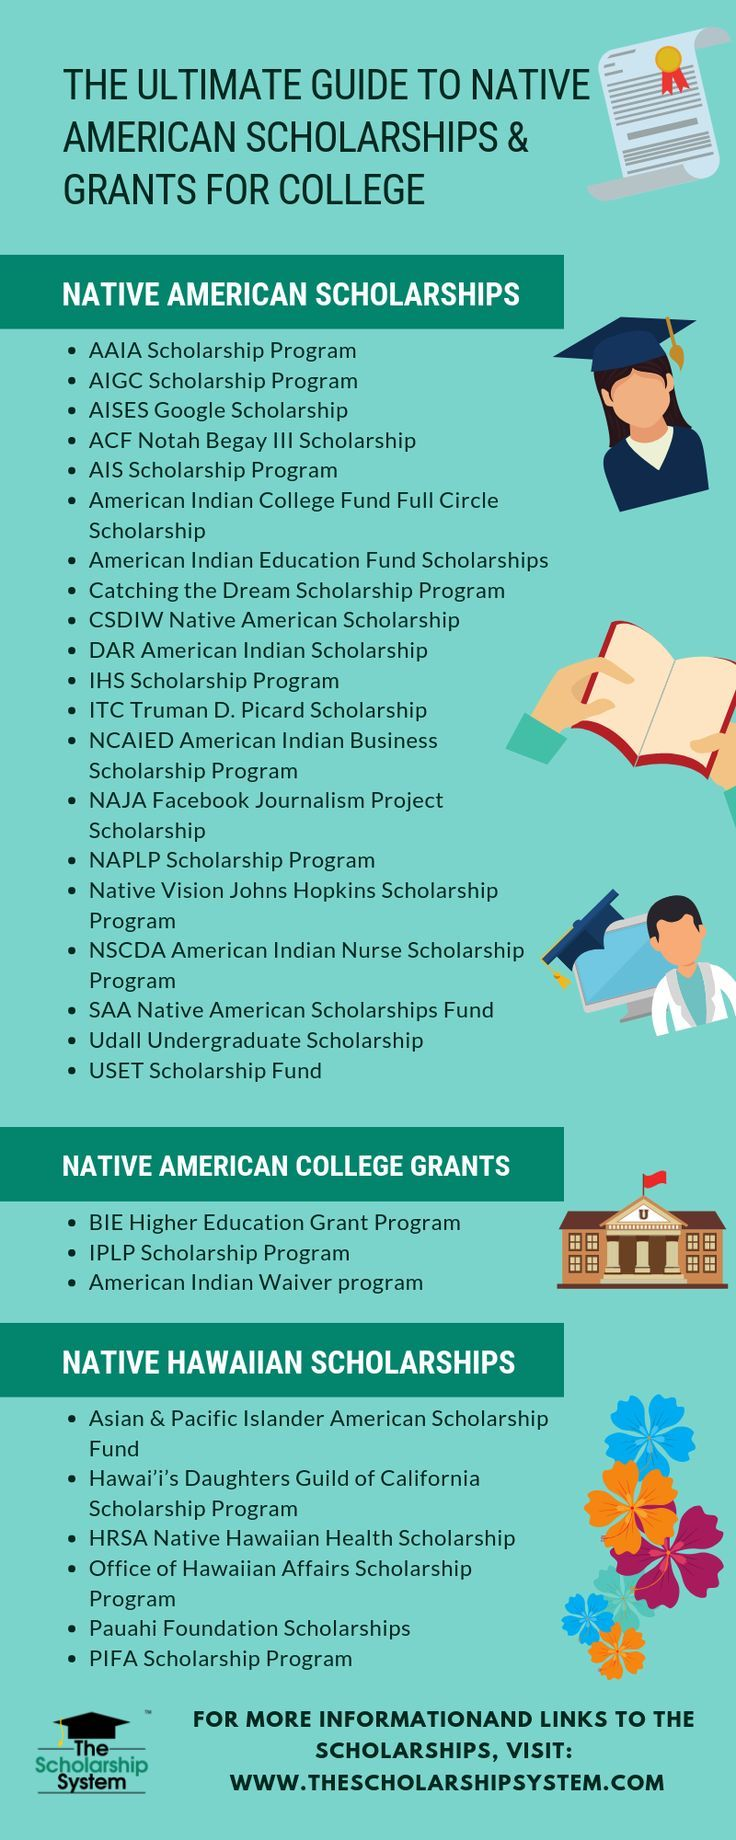 The Ultimate Guide to Native American Scholarships and Grants for